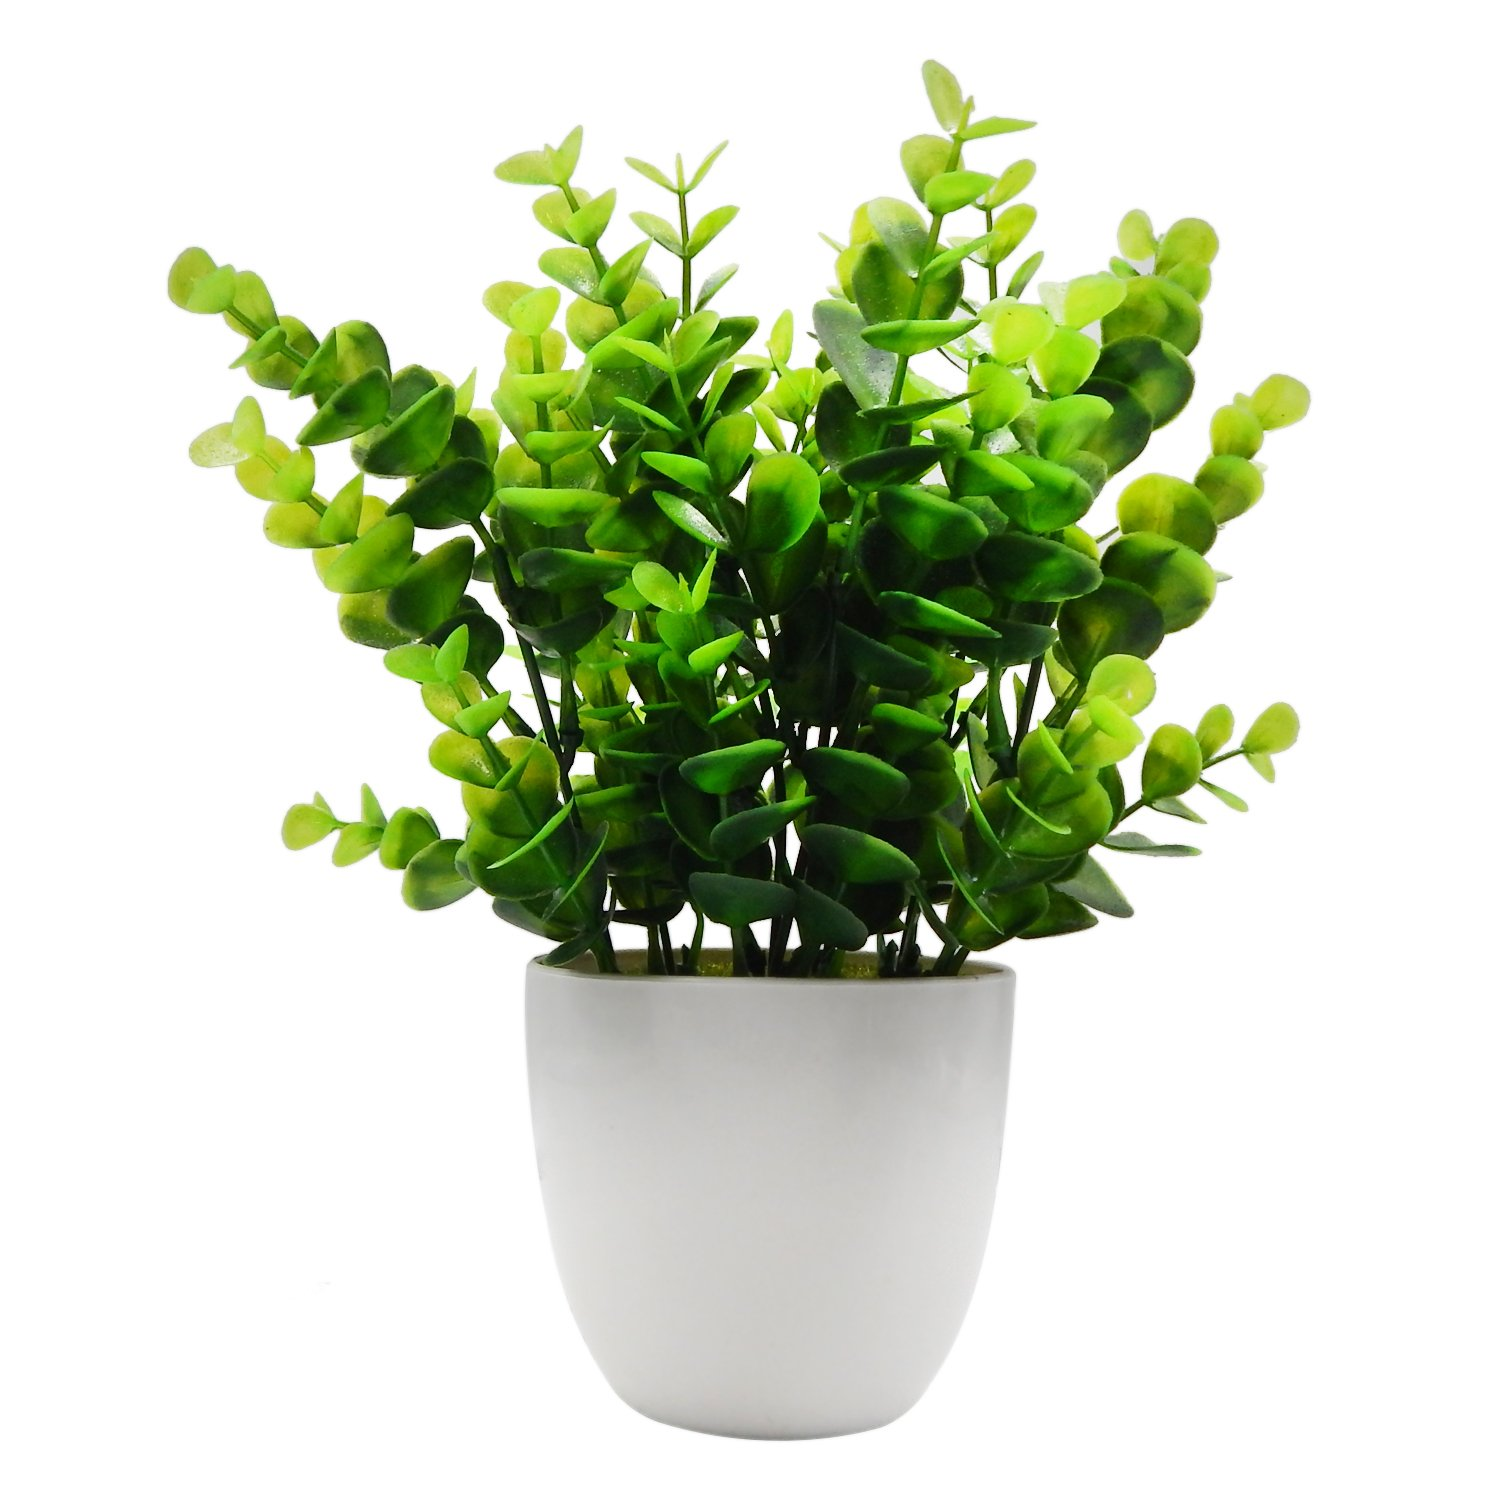 OFFIDIX Mini Plastic Eucalyptus Artificial Plants with Vase for Office Desk, Home and Friends' Gift Fake Plant with Plastic Pots for Home Decoration for Kids (Green) TEN0050